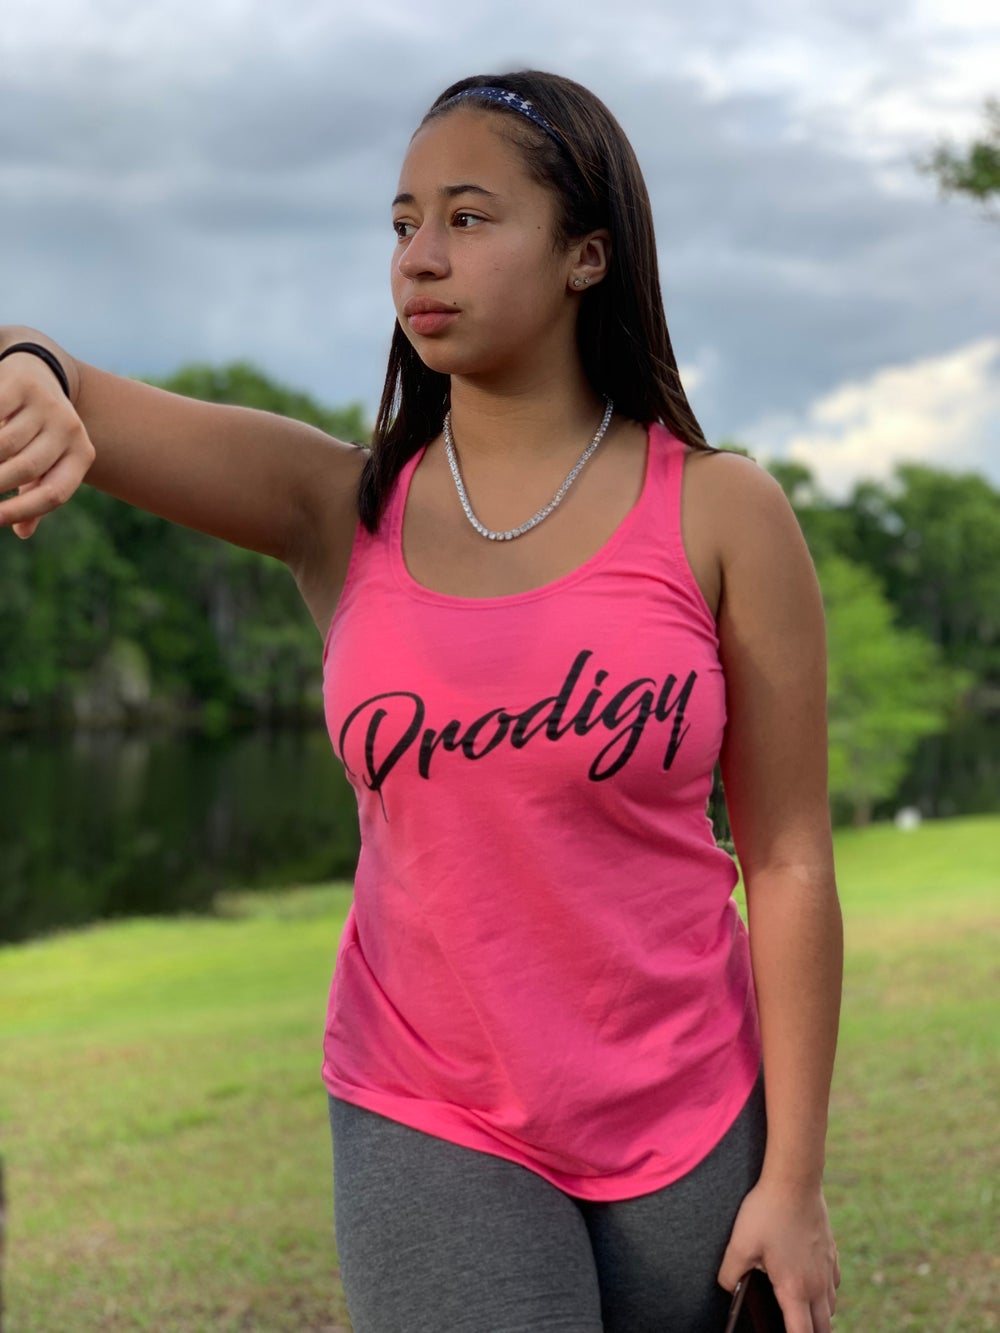 NEW PRODIGY SCRIPT PINK TANK WITH BLACK INK